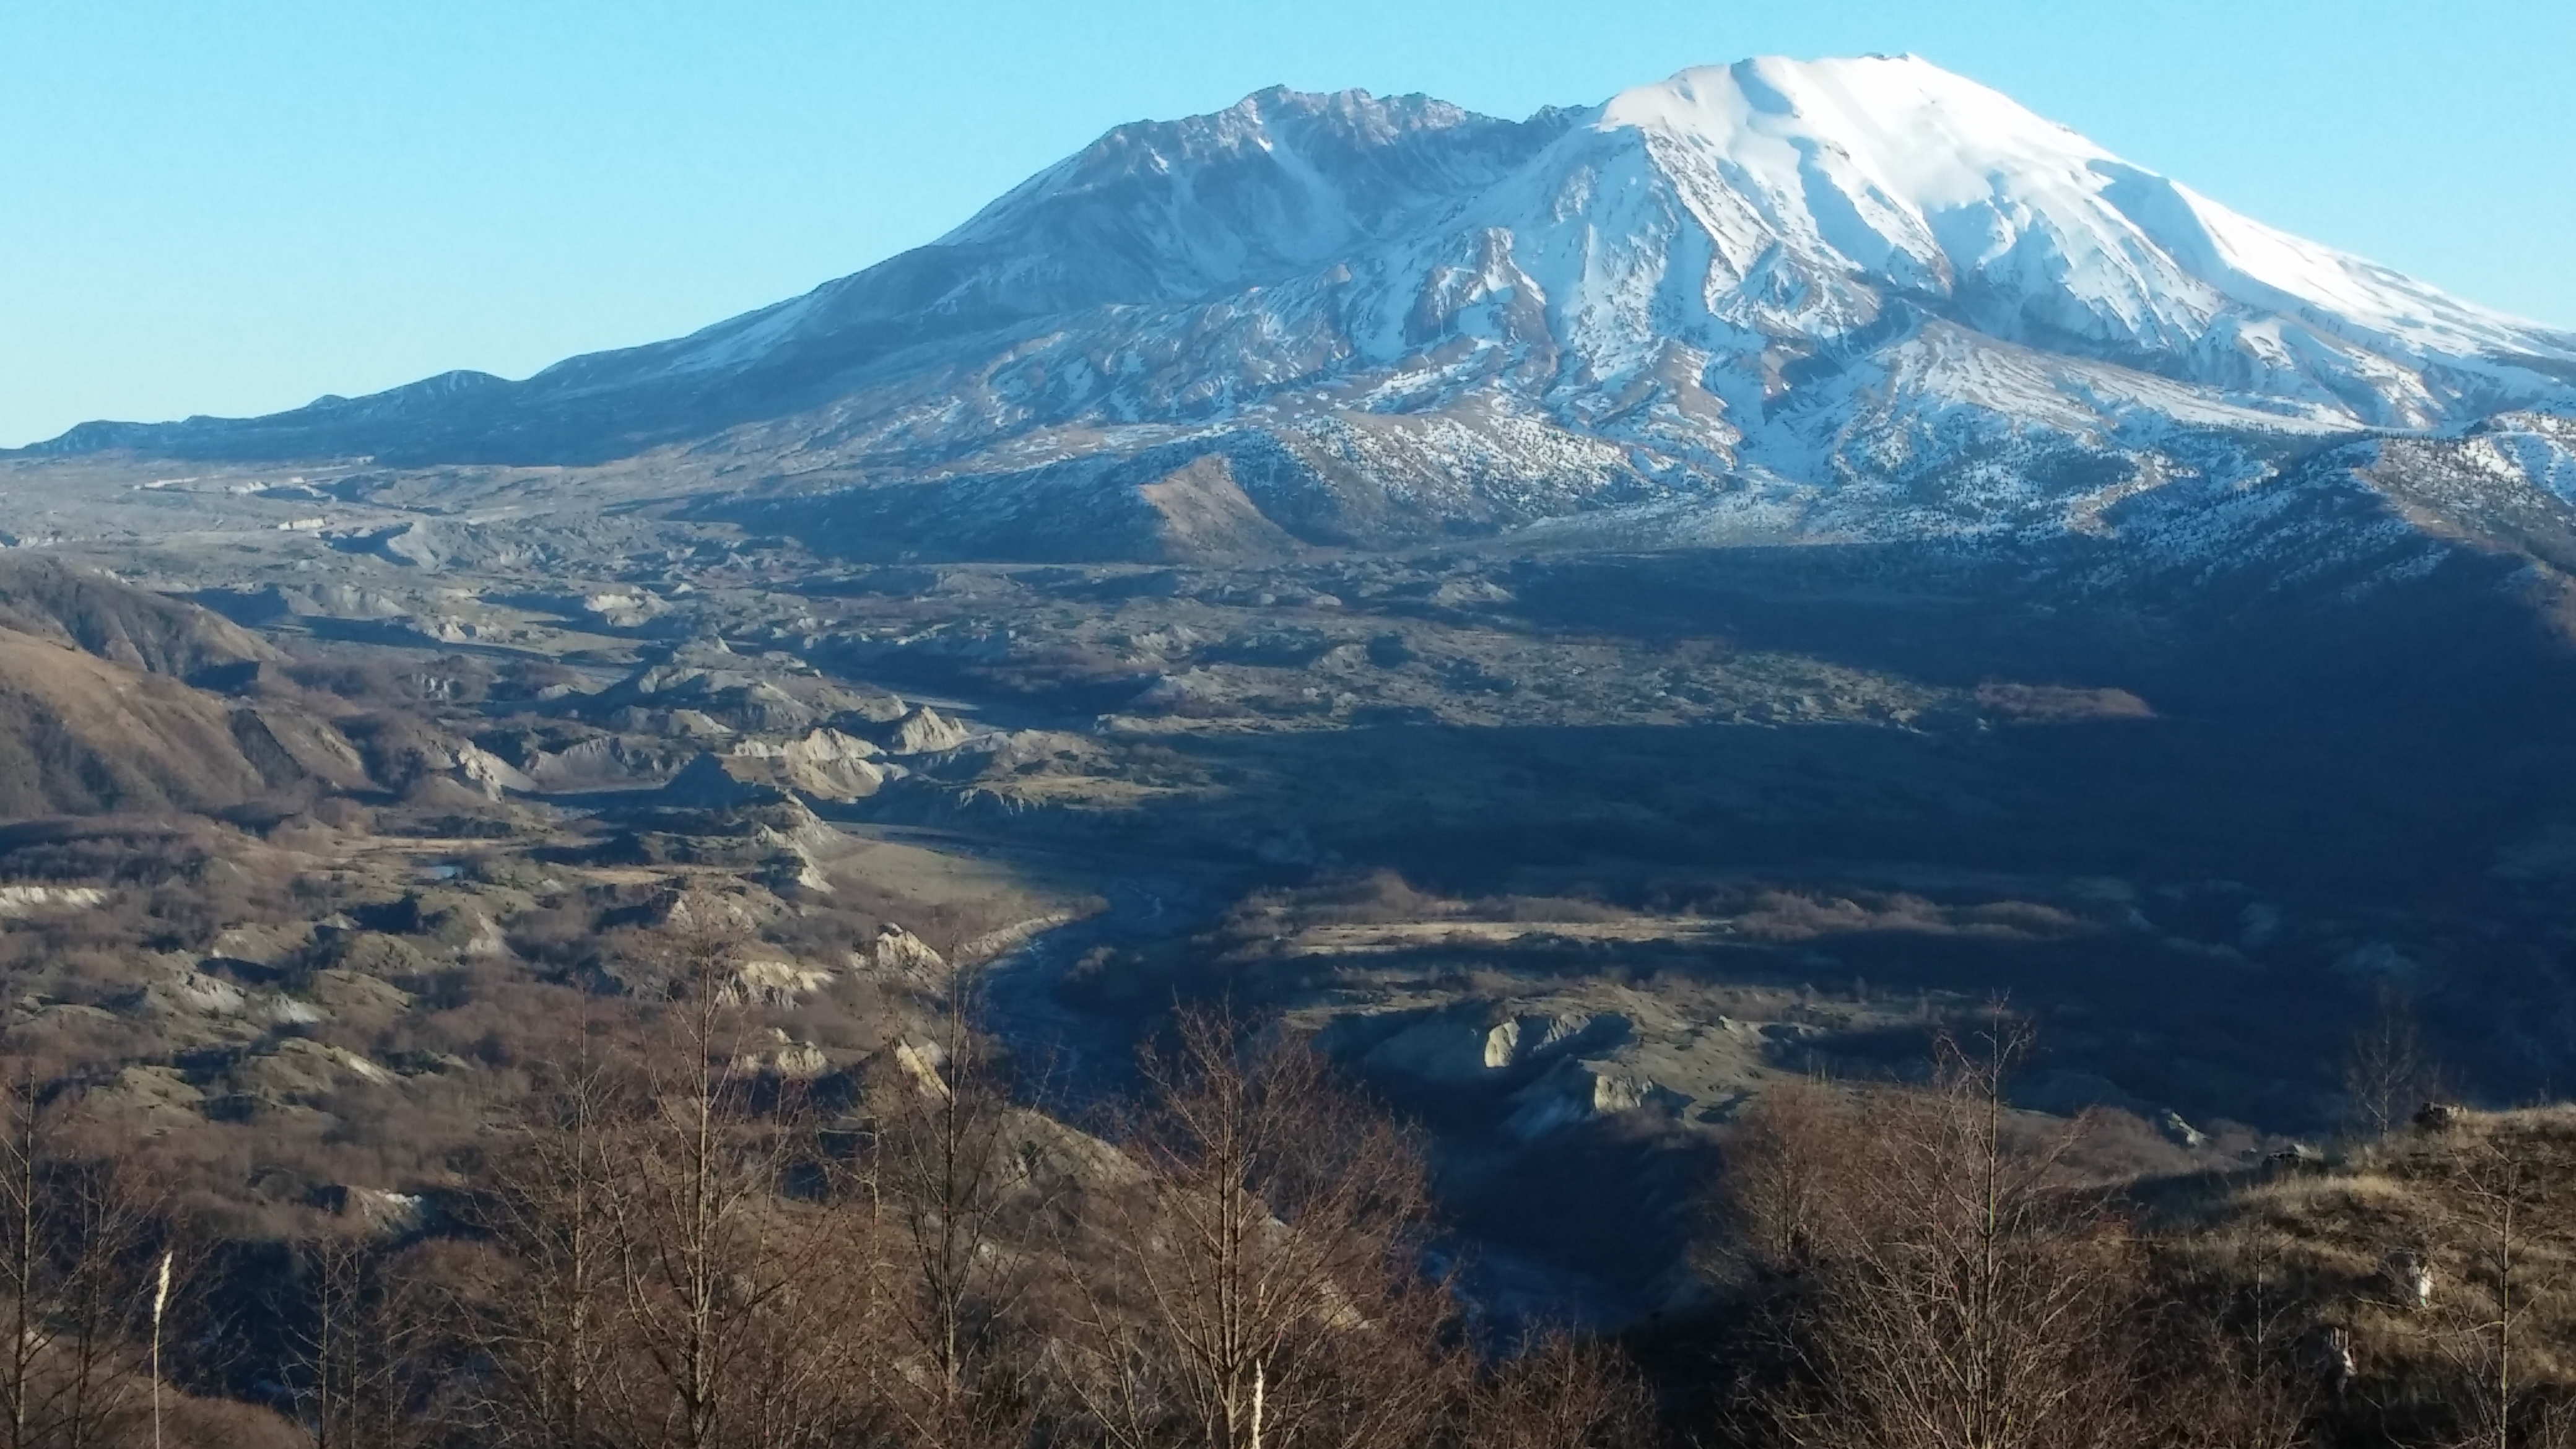 mount st helens rock dating The results came back dating the rock to 350,000 years old, with certain compounds within it as old as 28 million years dr mount st helens.